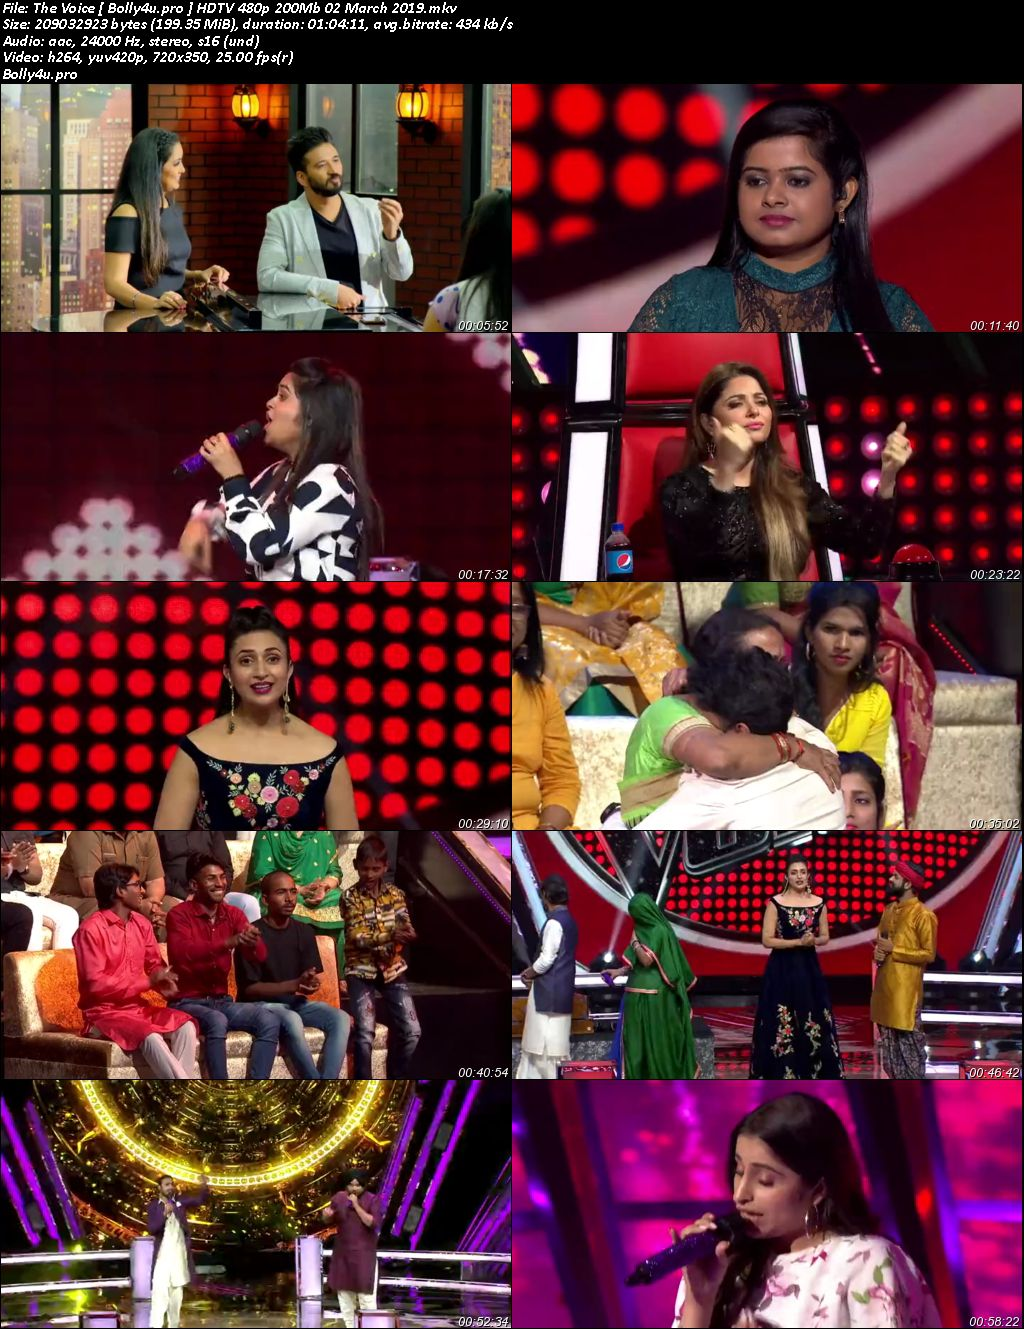 The Voice HDTV 480p 200Mb 02 March 2019 Download